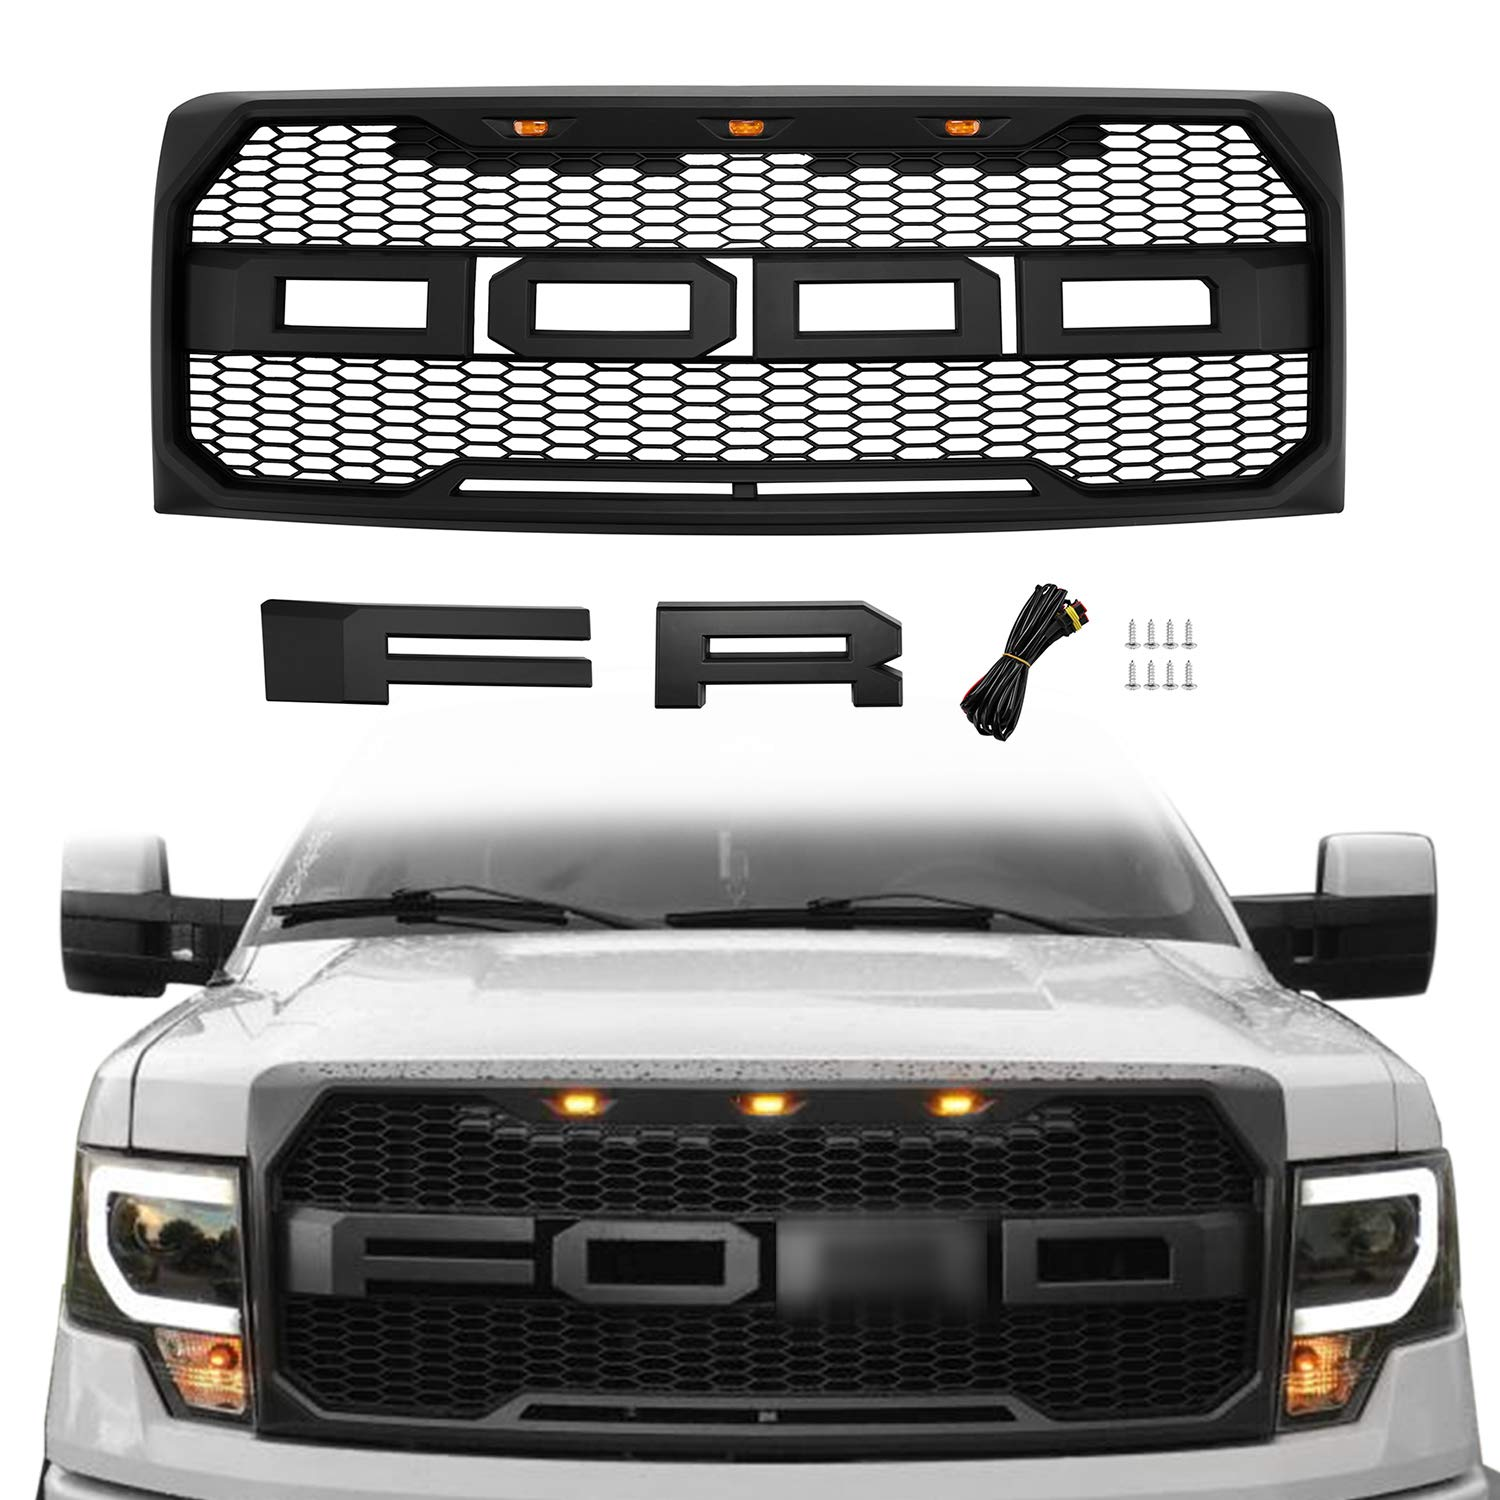 Seven Sparta Front Grill for Ford F150 2009-2014, Raptor Style Grill for Ford Grill Replacement, Matte Black